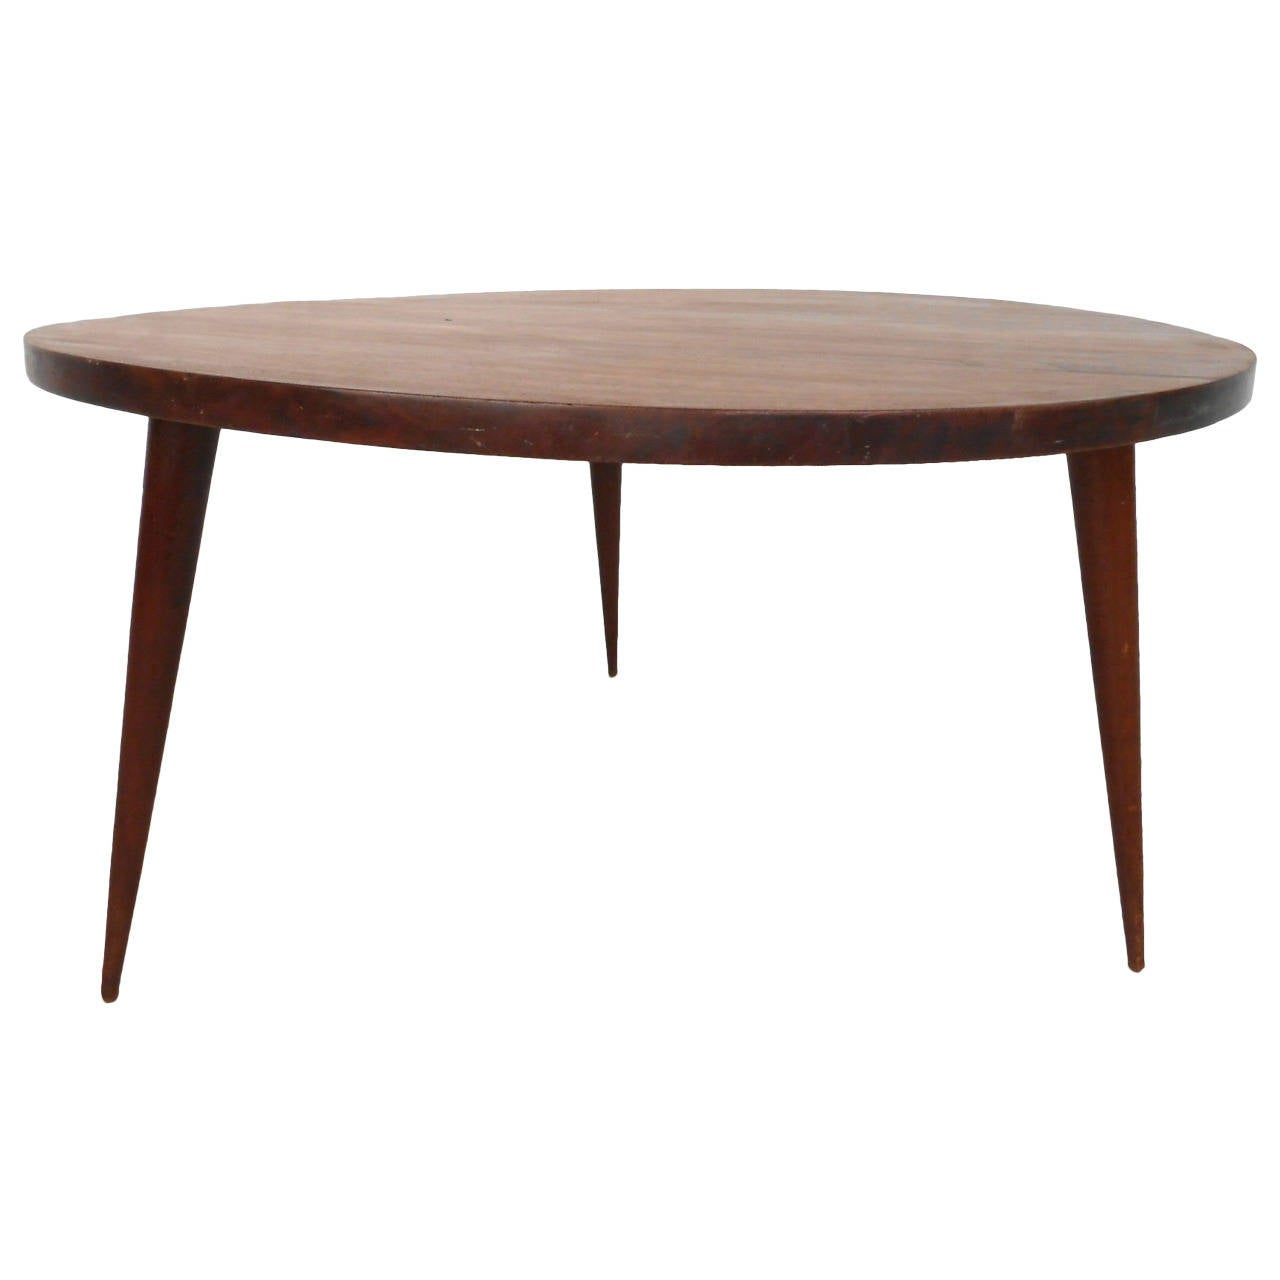 Mid century modern small round coffee table at 1stdibs Round coffee table modern